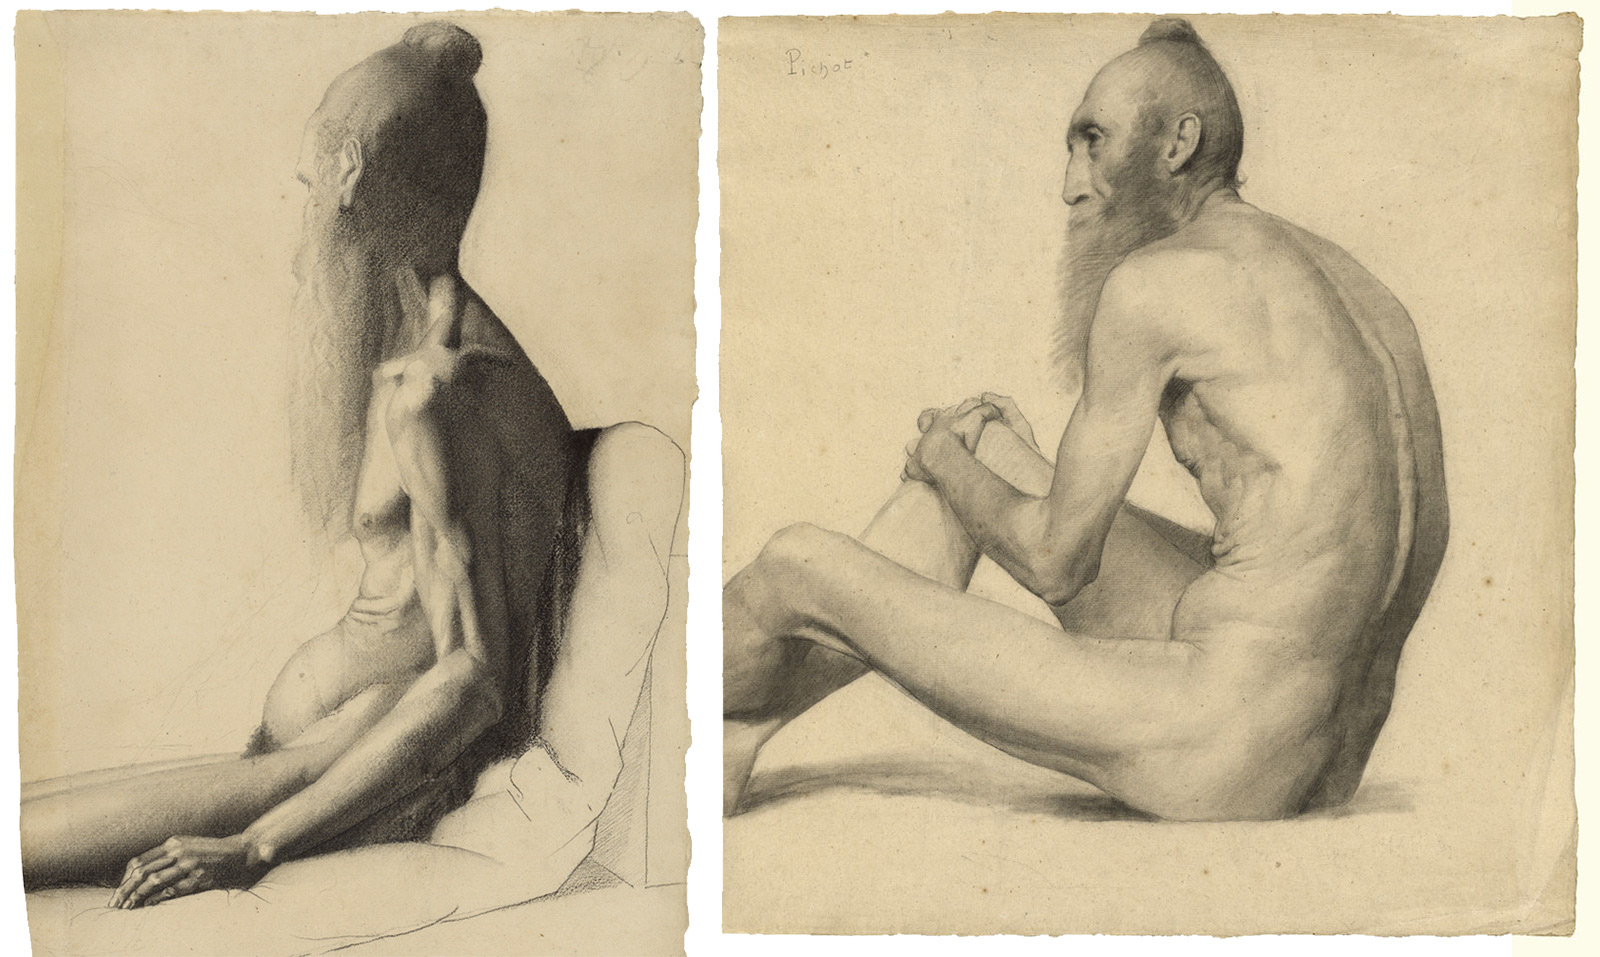 Side-by-side view of two pencil drawings of an aged, nude man with a long beard, sitting, seen from the side and rear